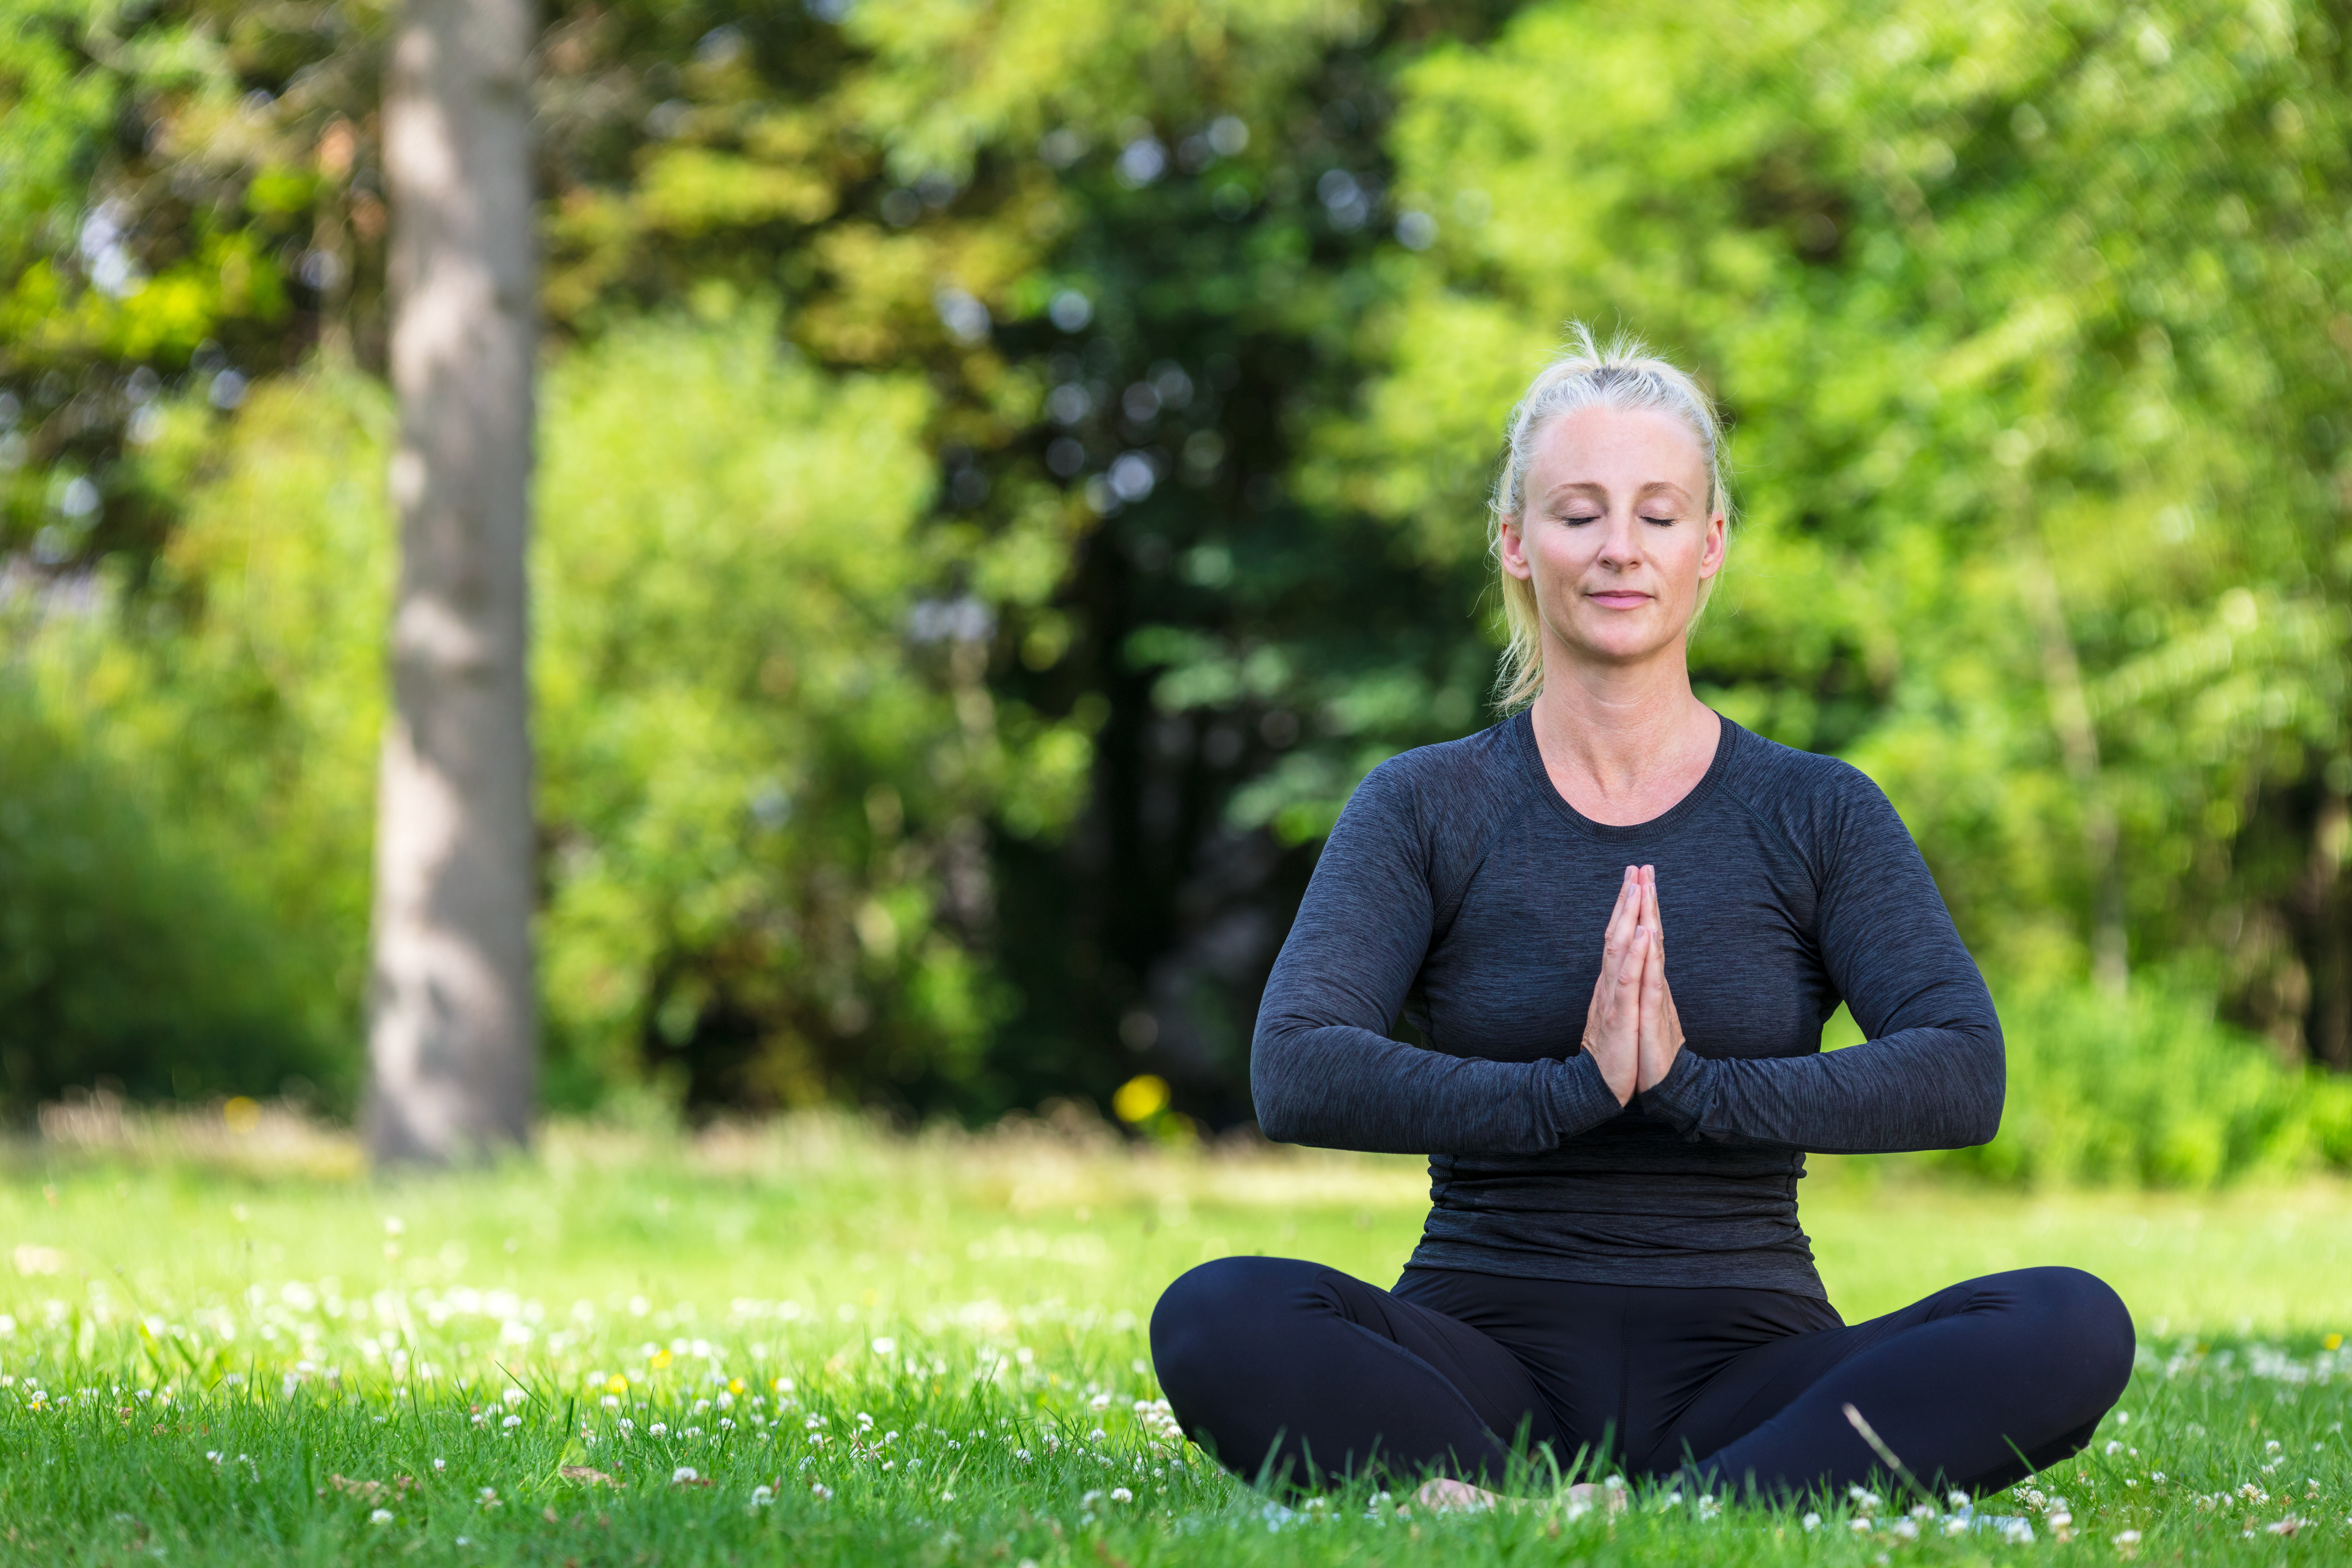 Meditation, beginner's yoga, quiet time, self care, yoga for transformation, yoga for weight loss and maintenance